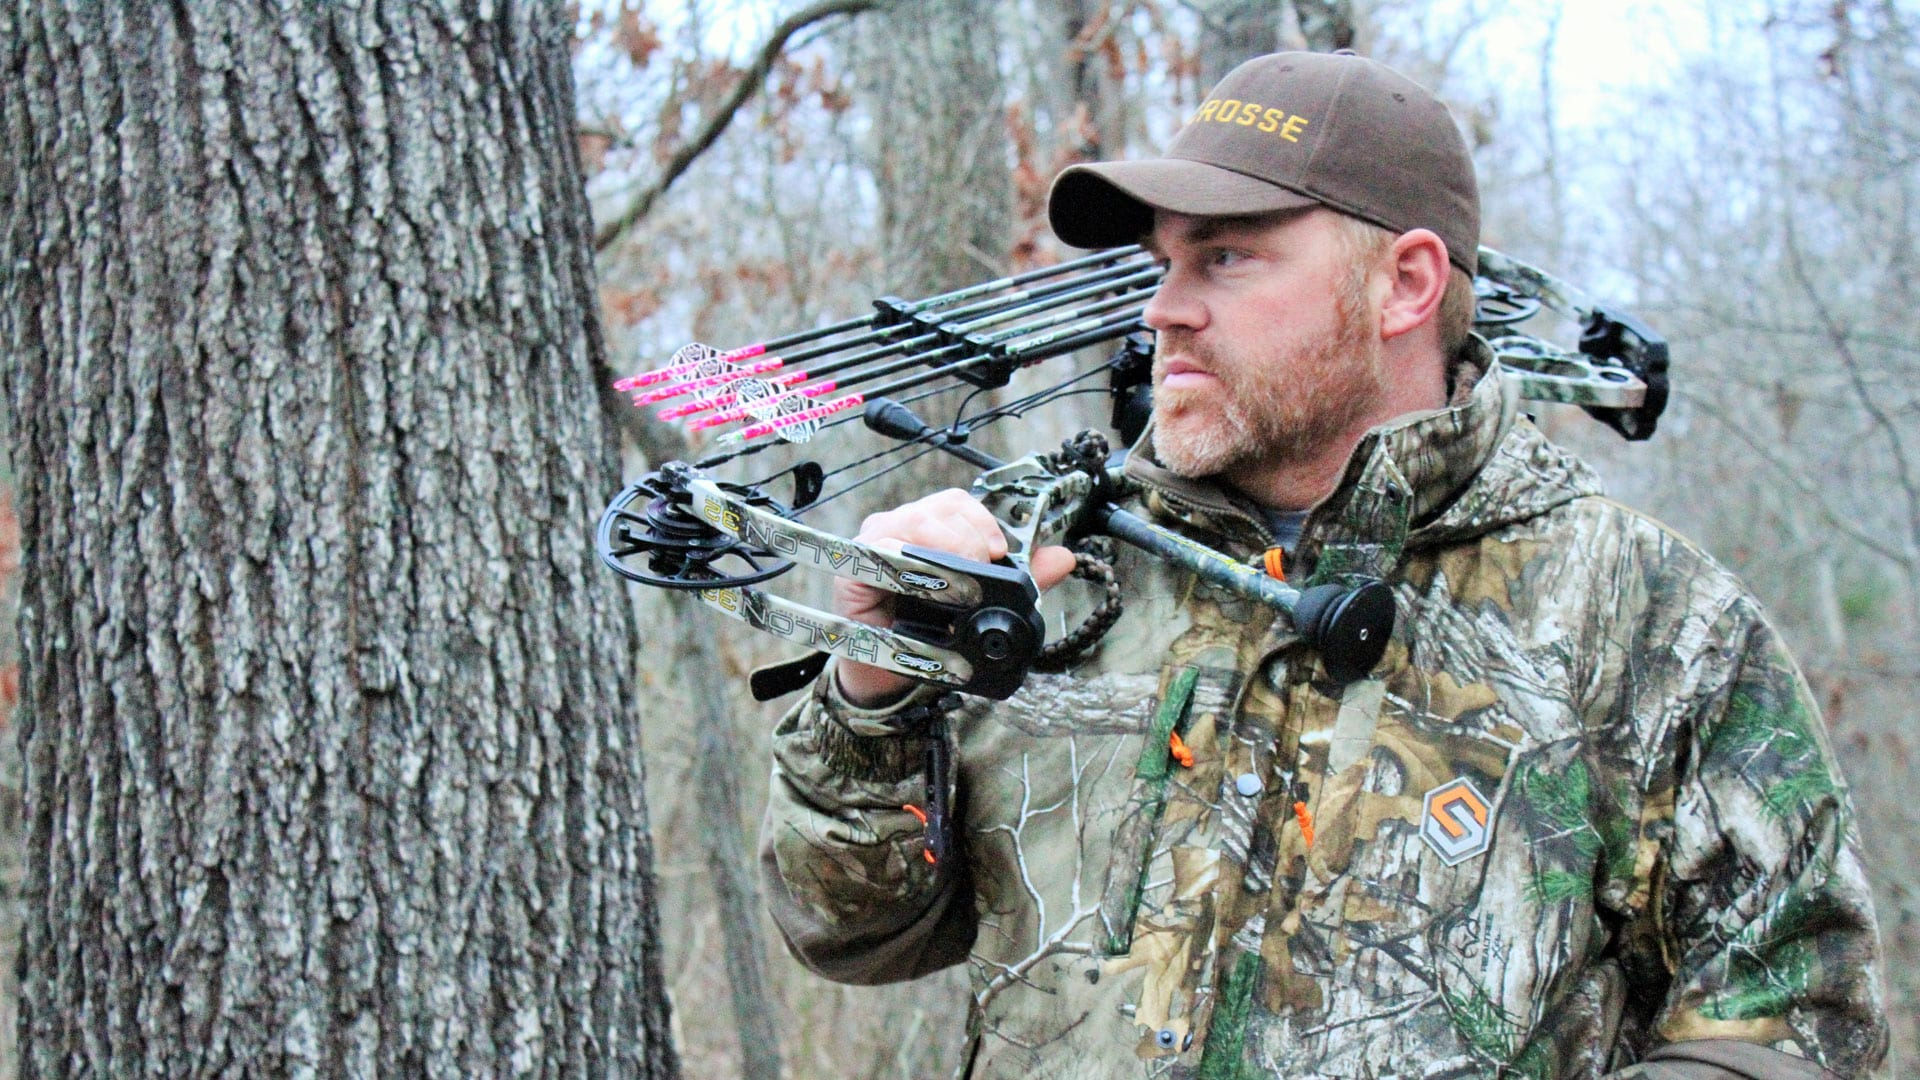 c4b086e820f10 Best Late Season Hunting Apparel | Bowhunting.com